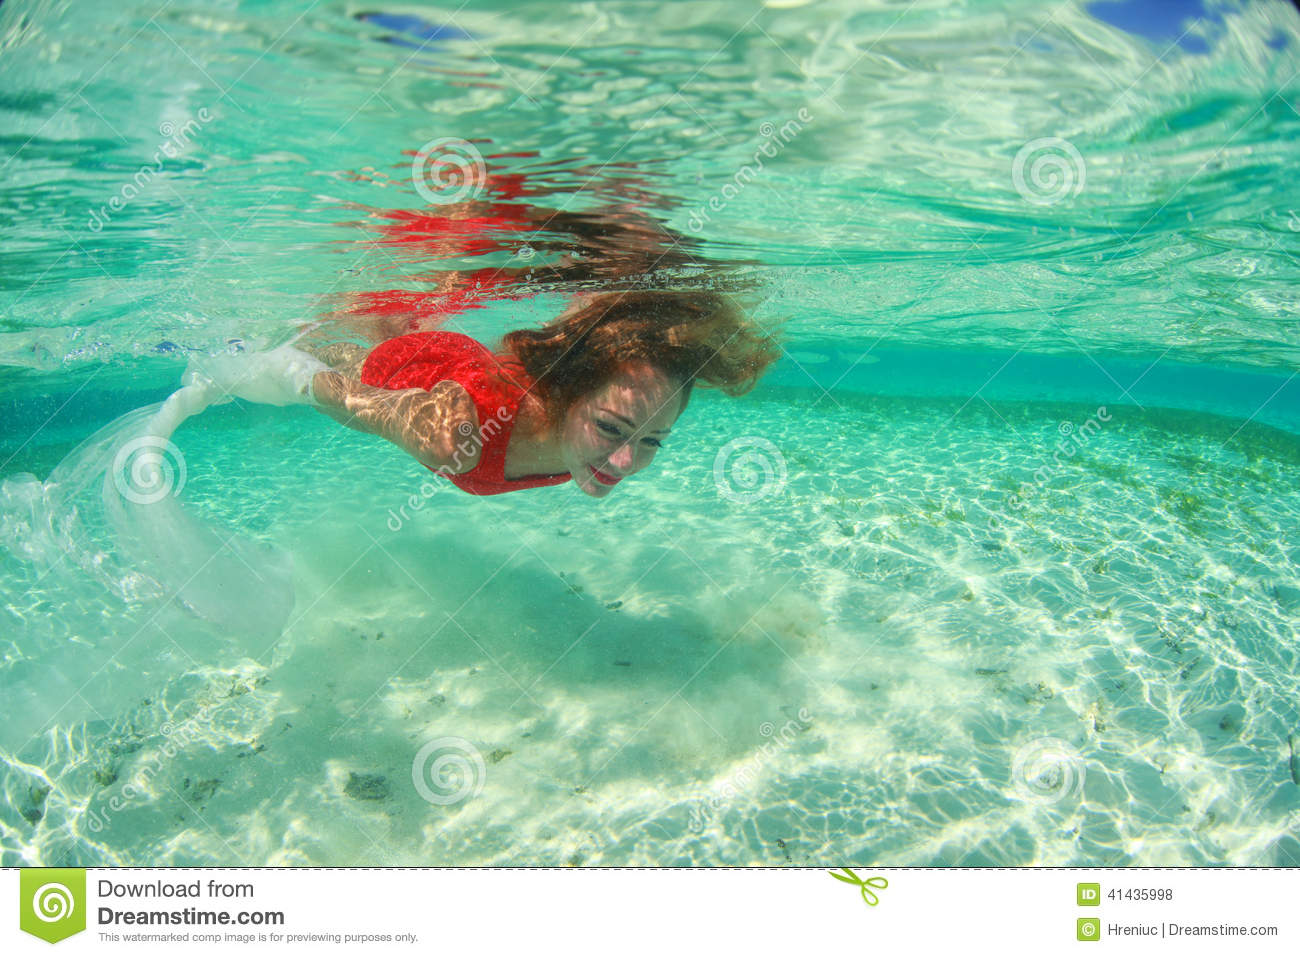 Well possible! Chubby girl swimming remarkable, amusing